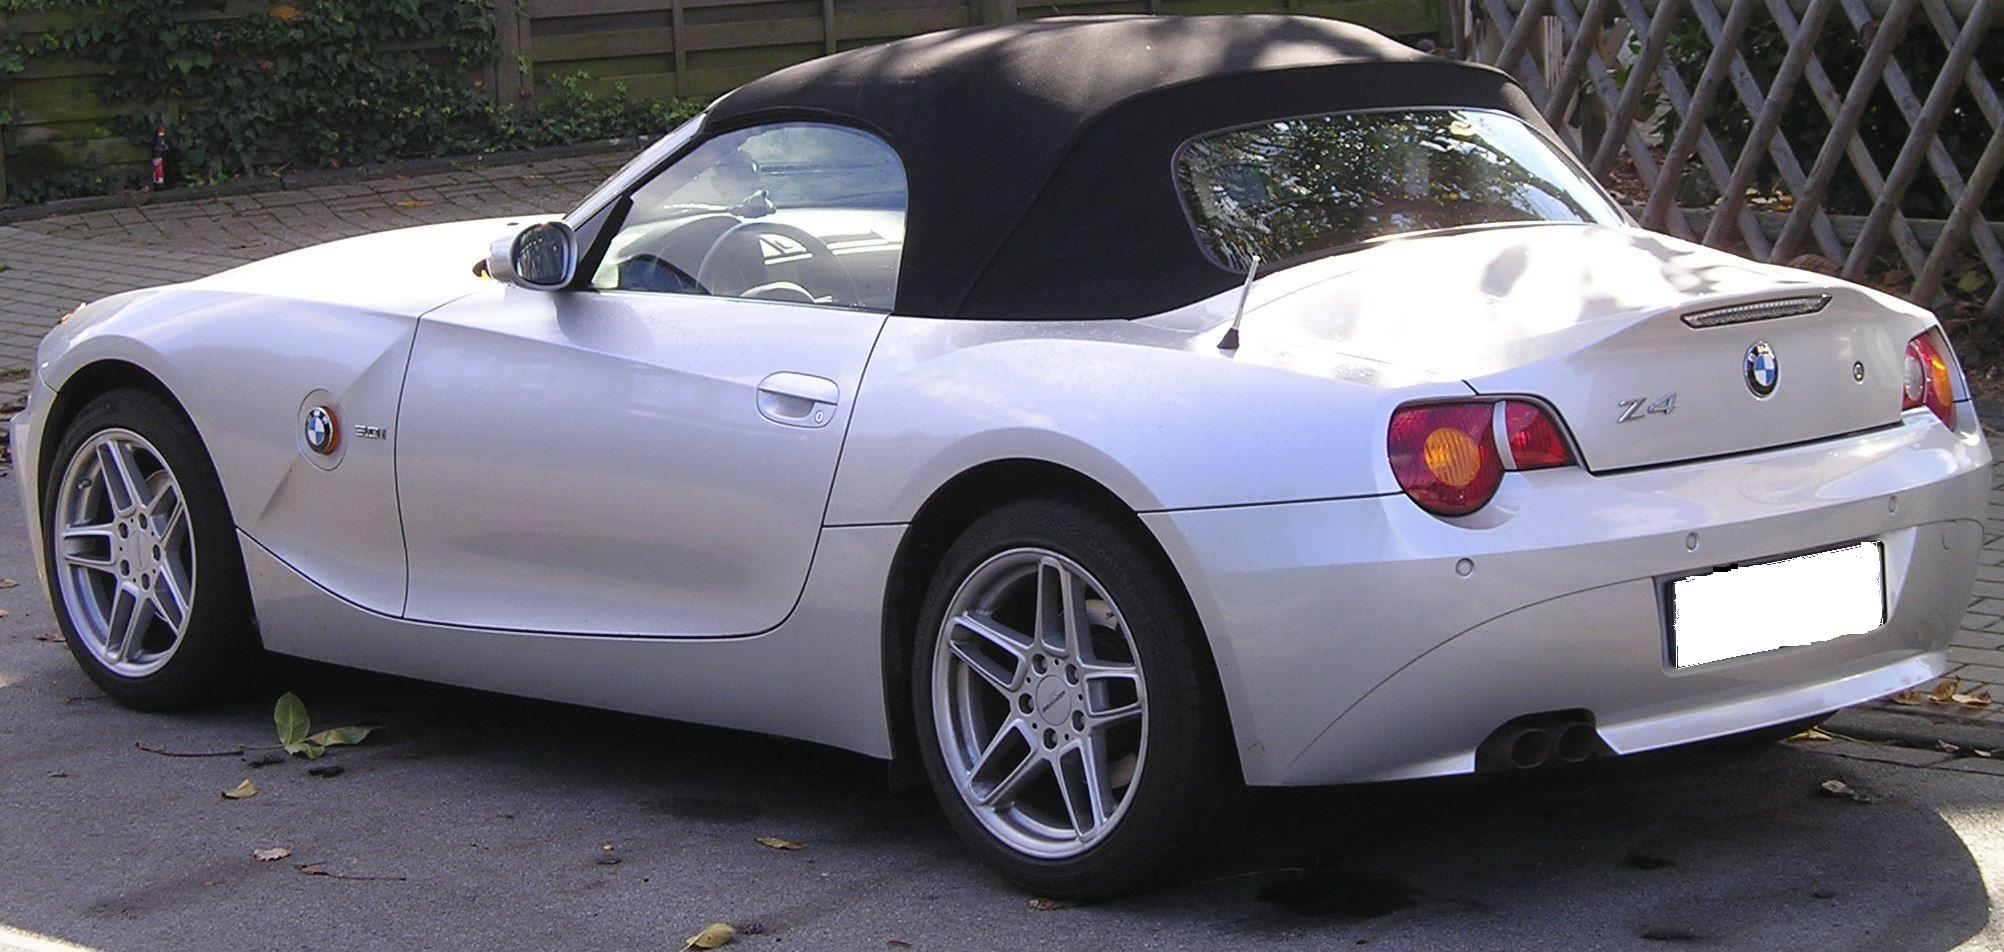 file:bmw z4 back extract - wikimedia commons